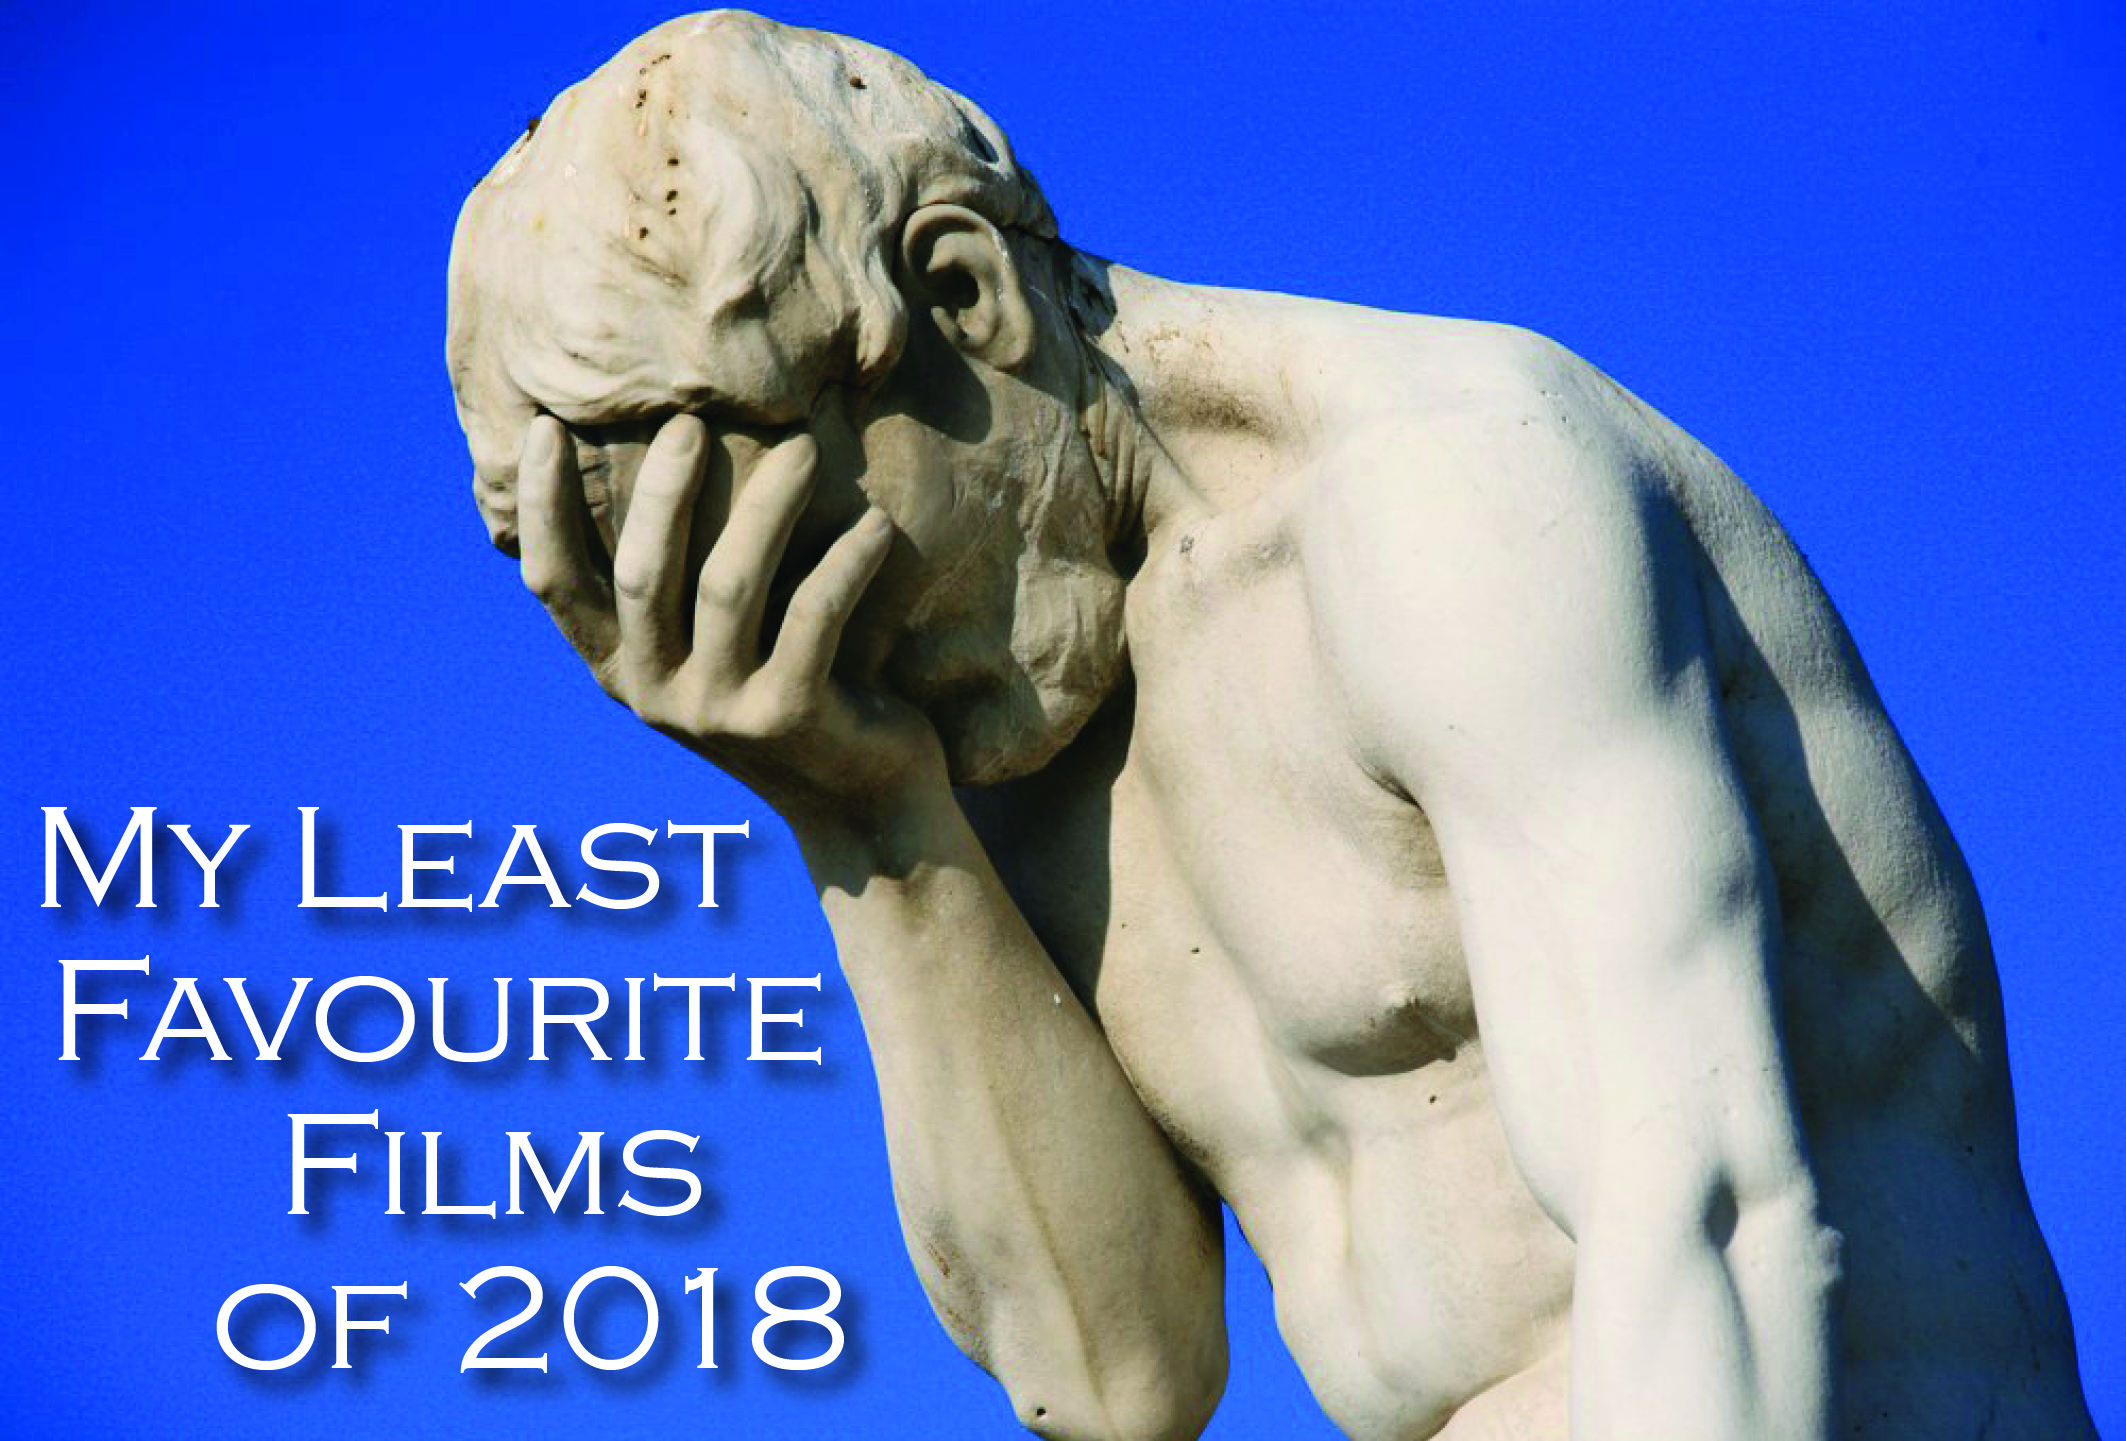 My Least Favourite Films of 2018